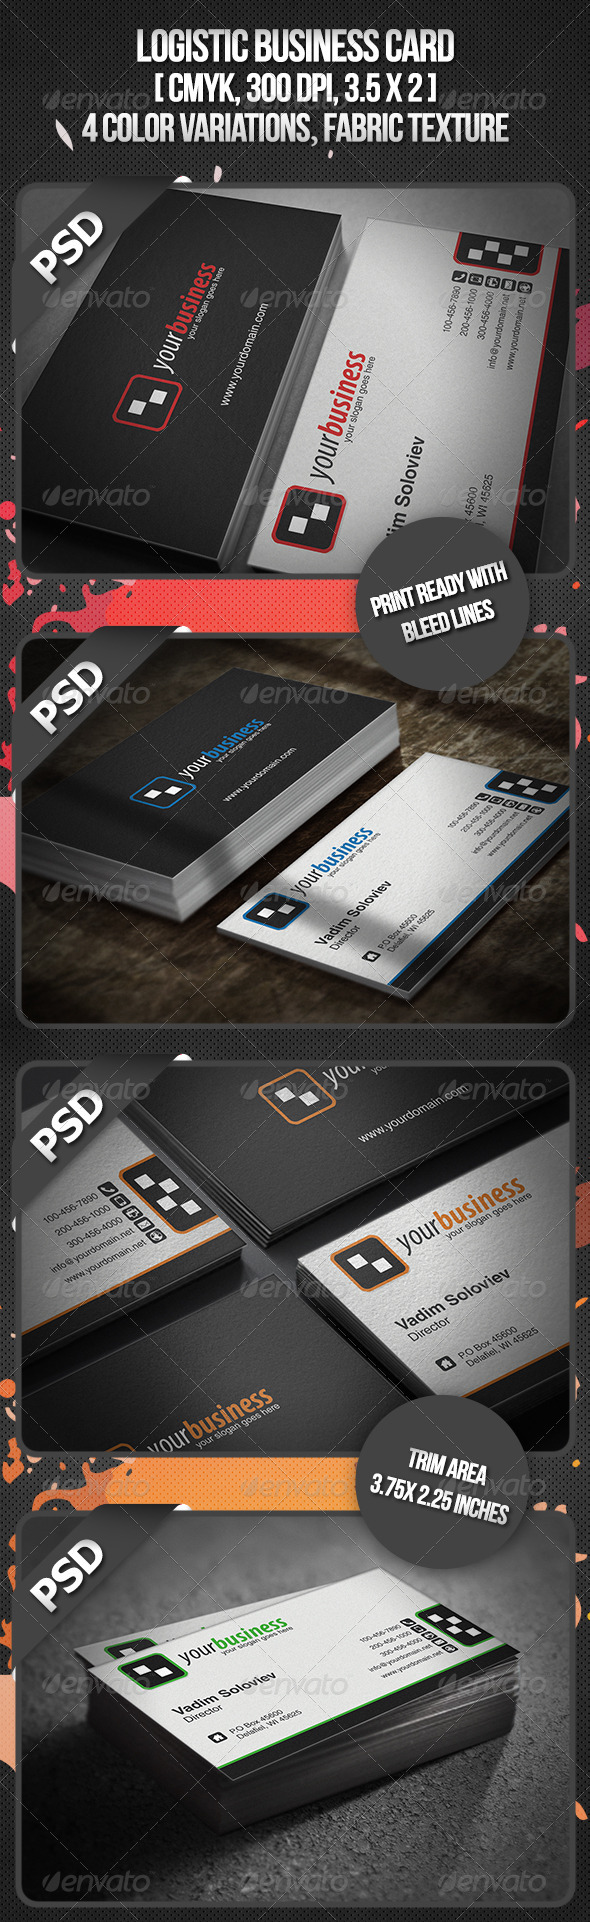 Logistic Business Card - Corporate Business Cards